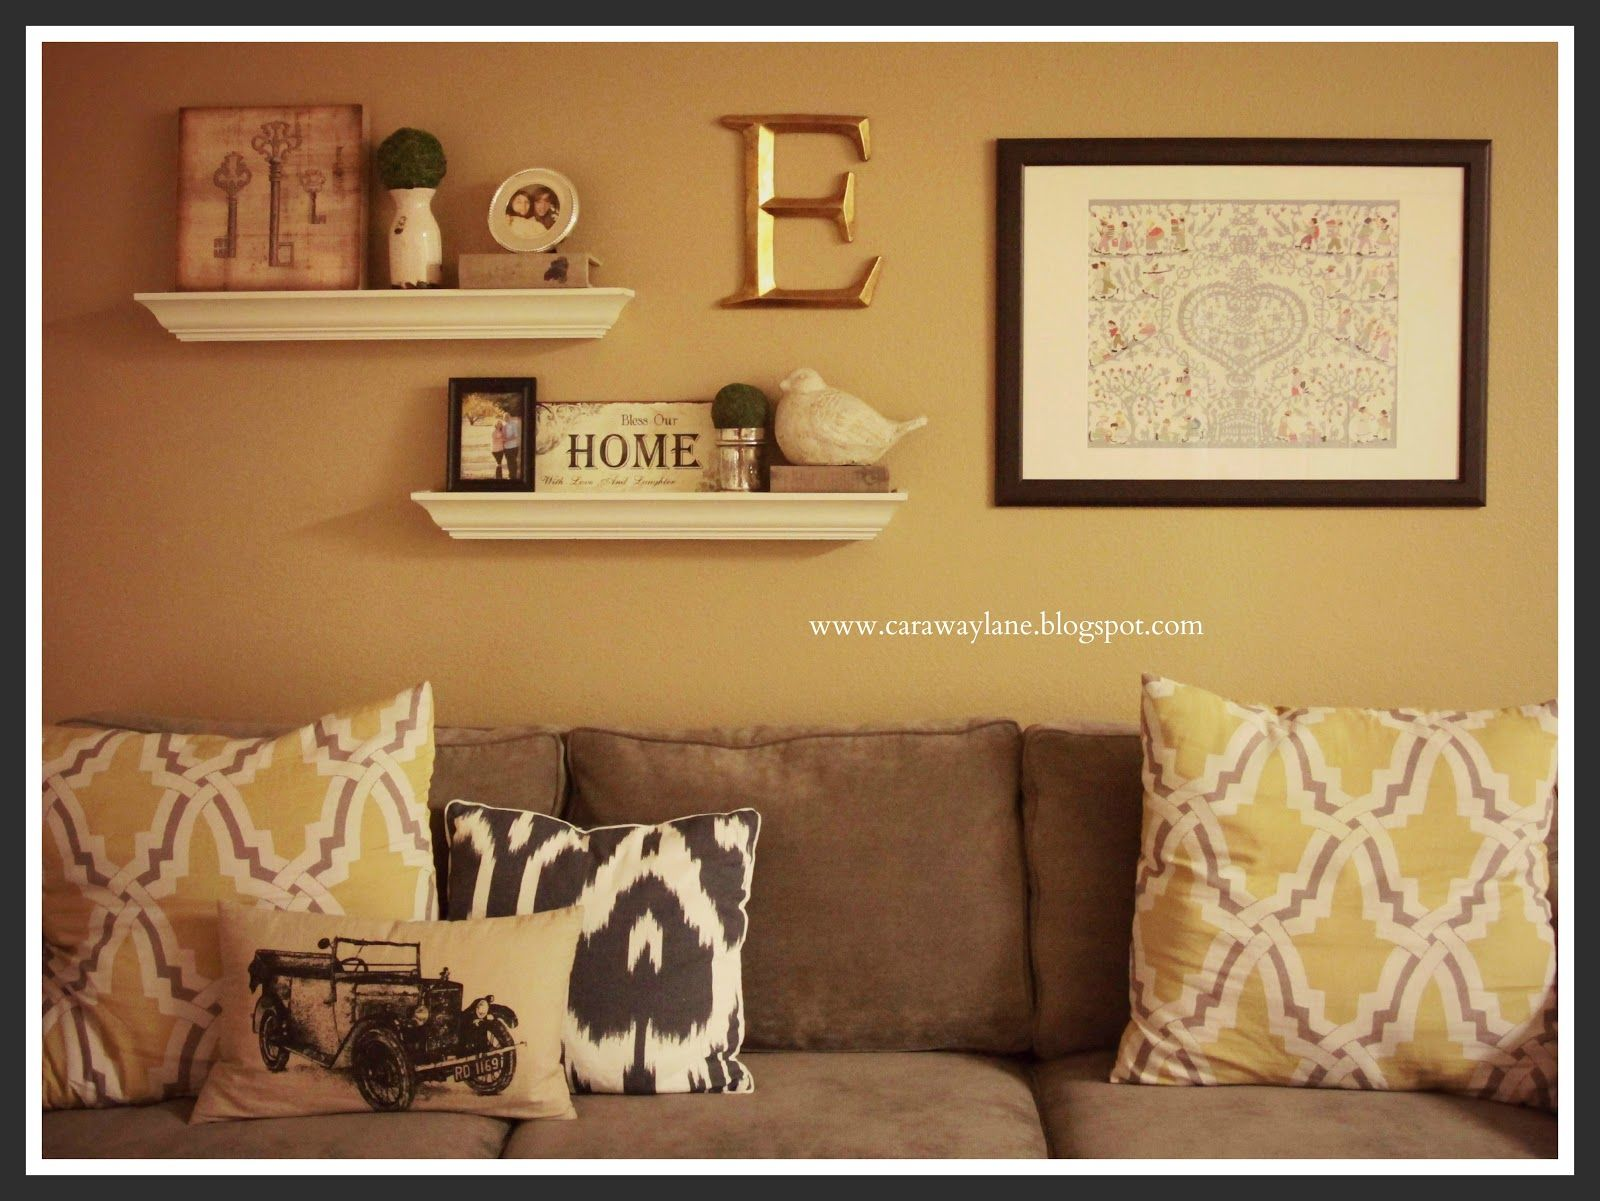 Decorate over a sofa above the couch wall decor future for Living room wall decor